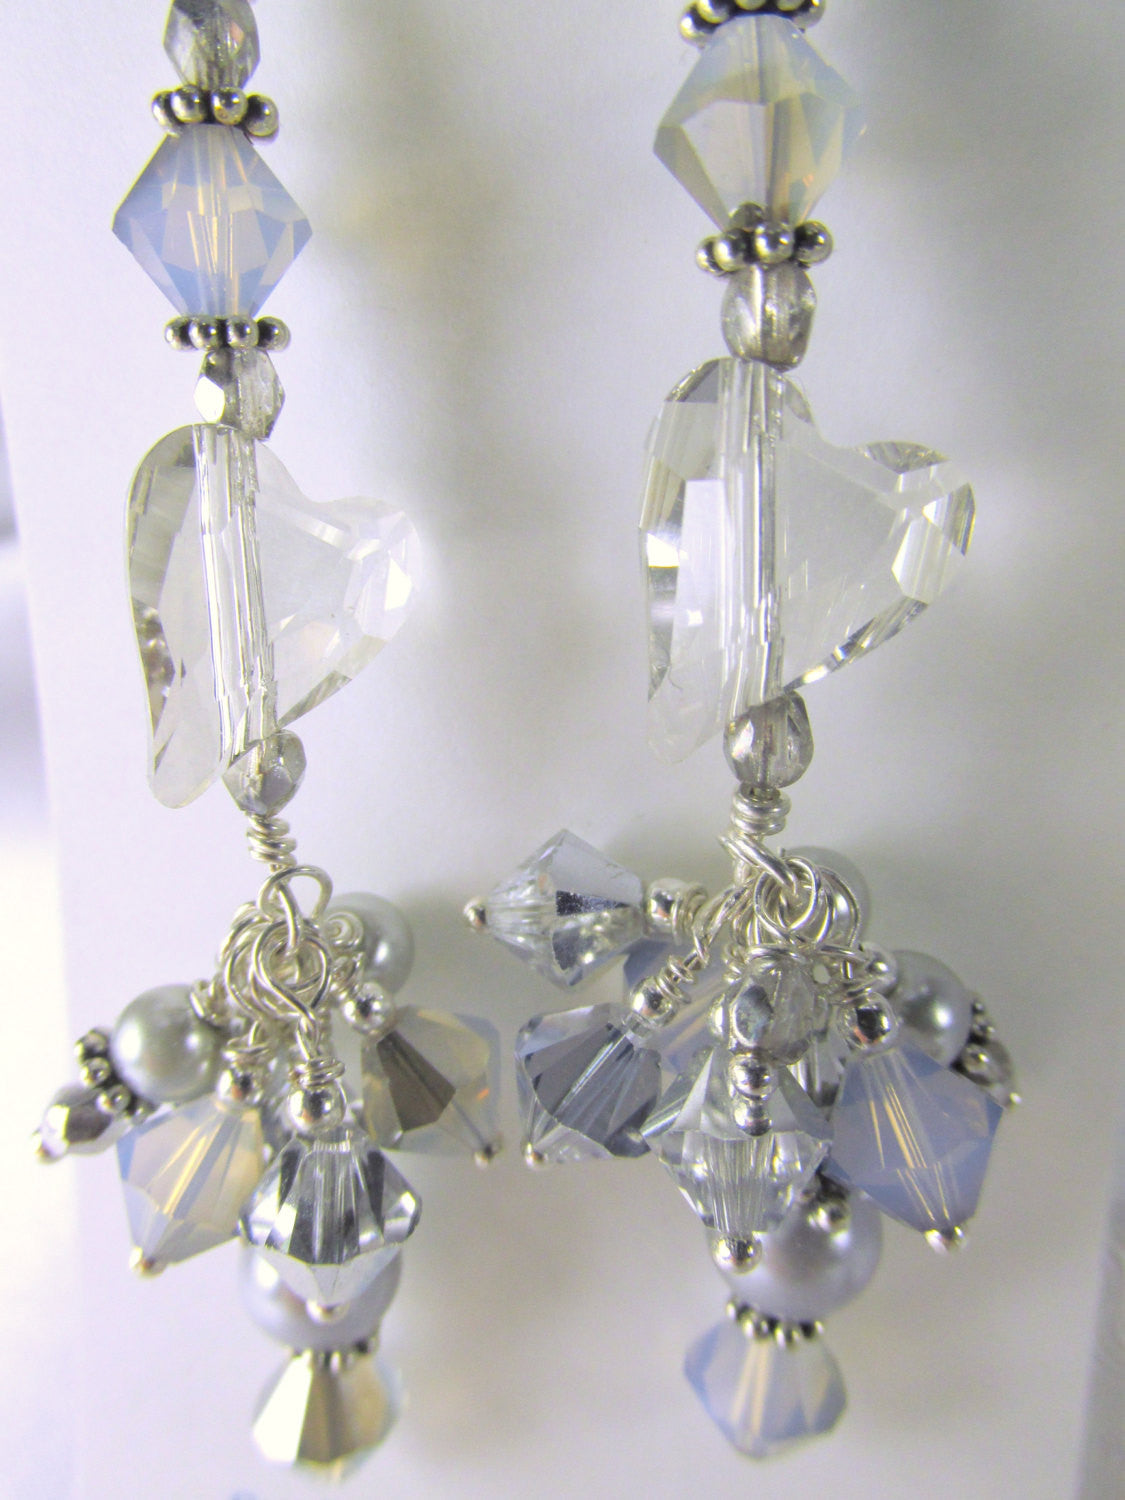 Swarovski Wild Heart Silver Shade Light Gray Earrings with Pearls on Sterling Silver - Odyssey Creations